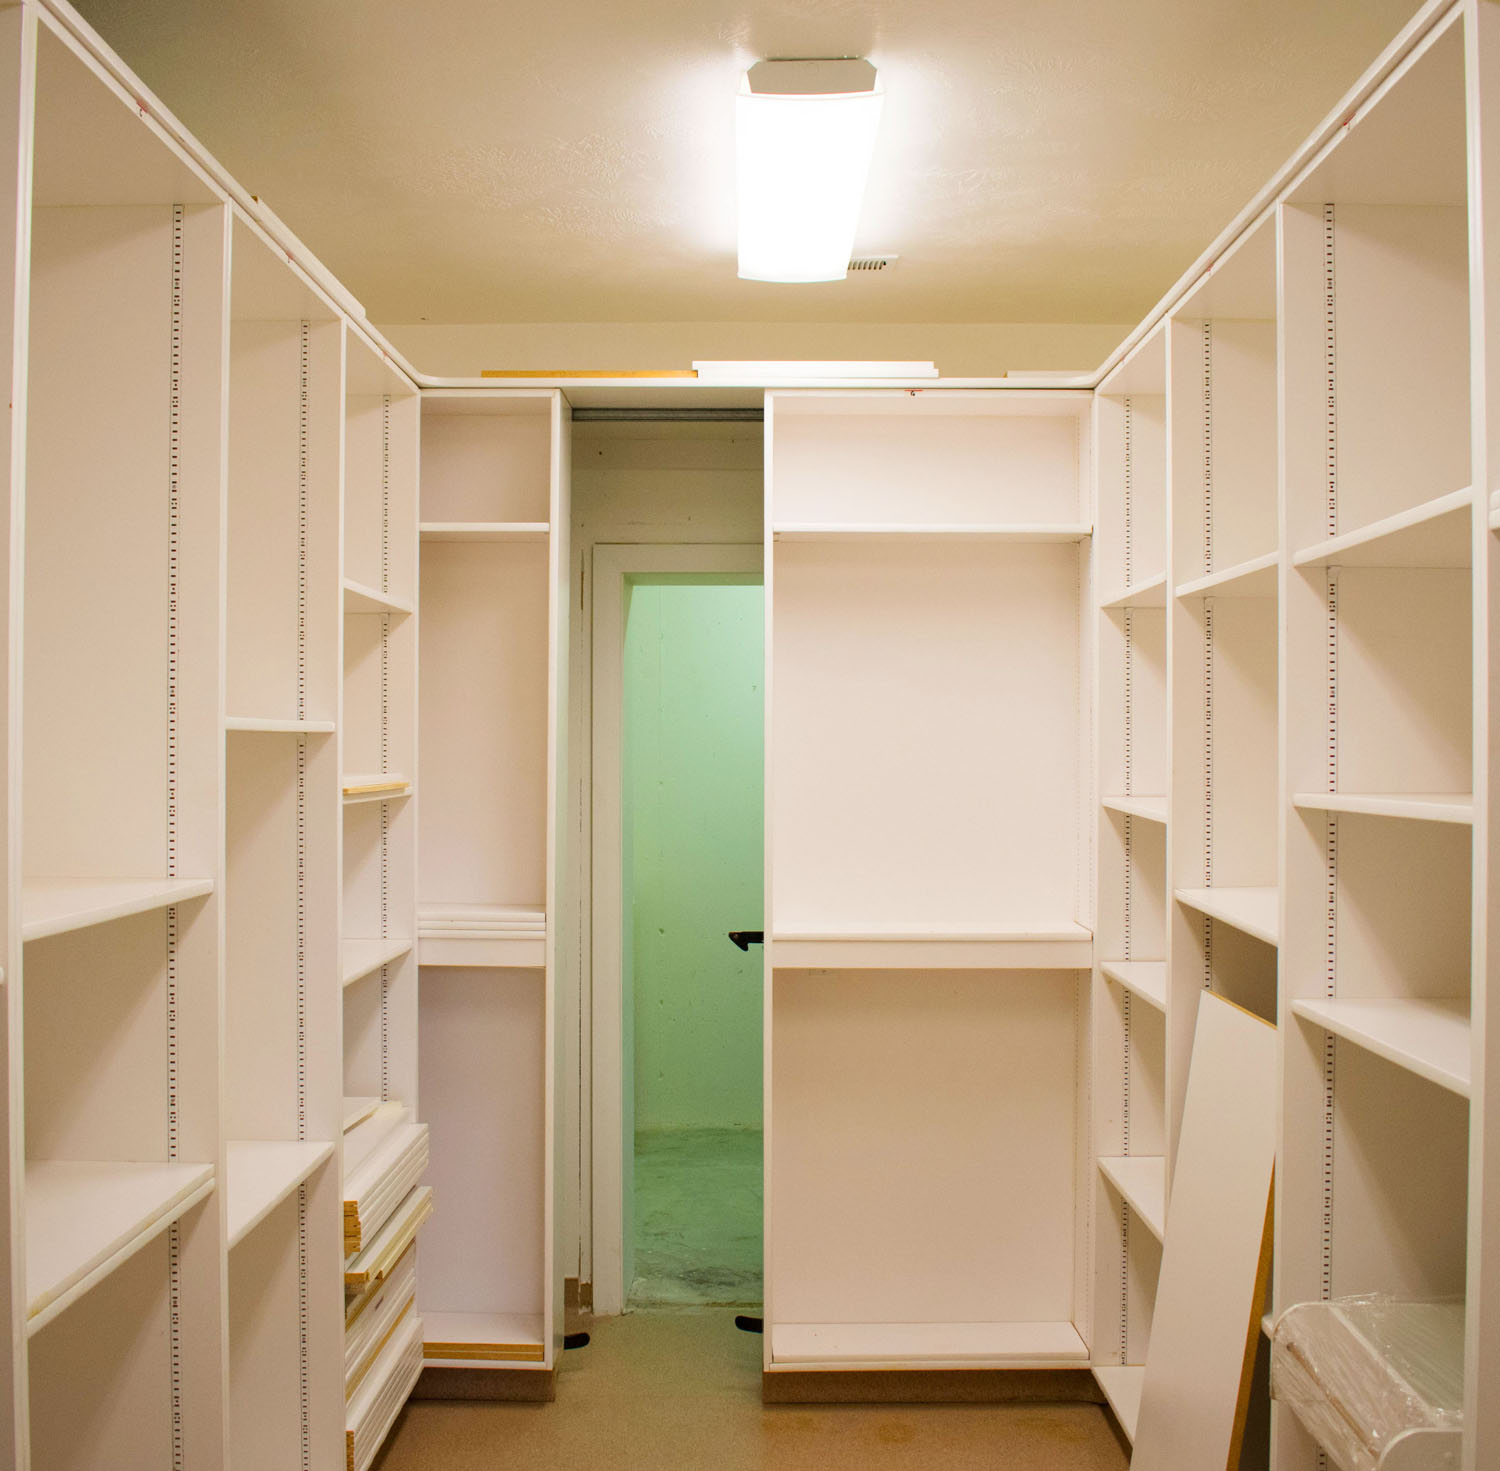 ...rumored to be a storage room for church documents and plural marriage records.